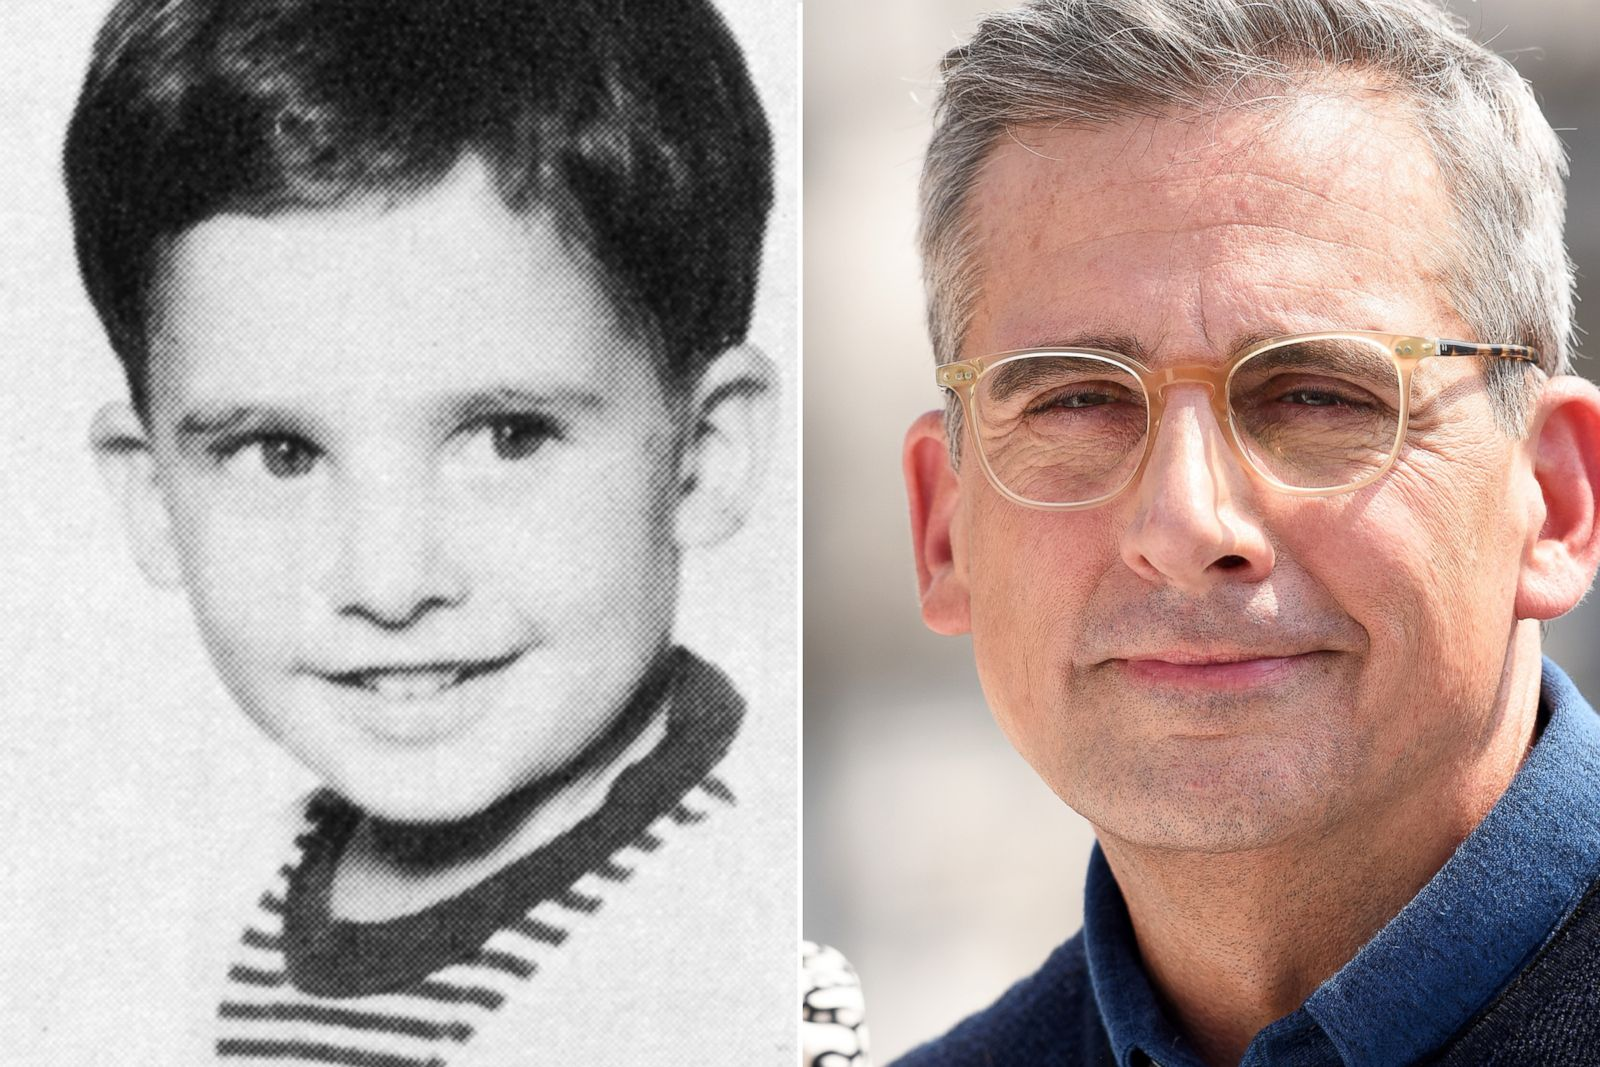 ' ' from the web at 'https://s.abcnews.com/images/Entertainment/steve-carell-ht-gty-ml-170816_3x2_1600.jpg'